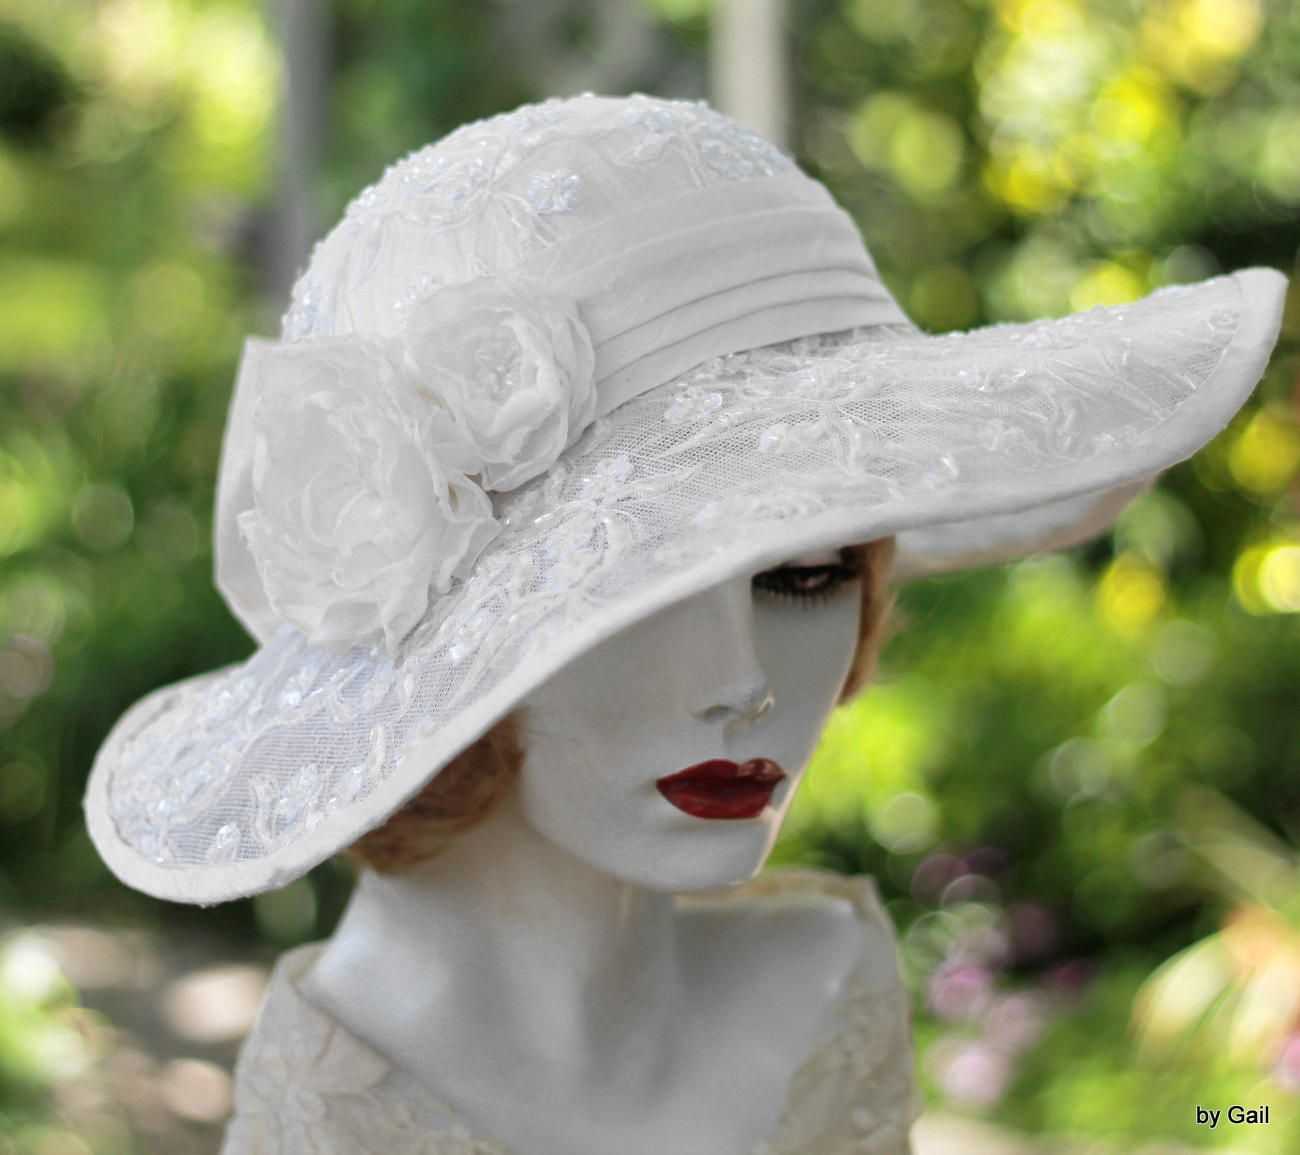 cda6485b8dade Custom Made Wide Brim Elegant Hat Lace Bridal Wedding In A Vintage Style